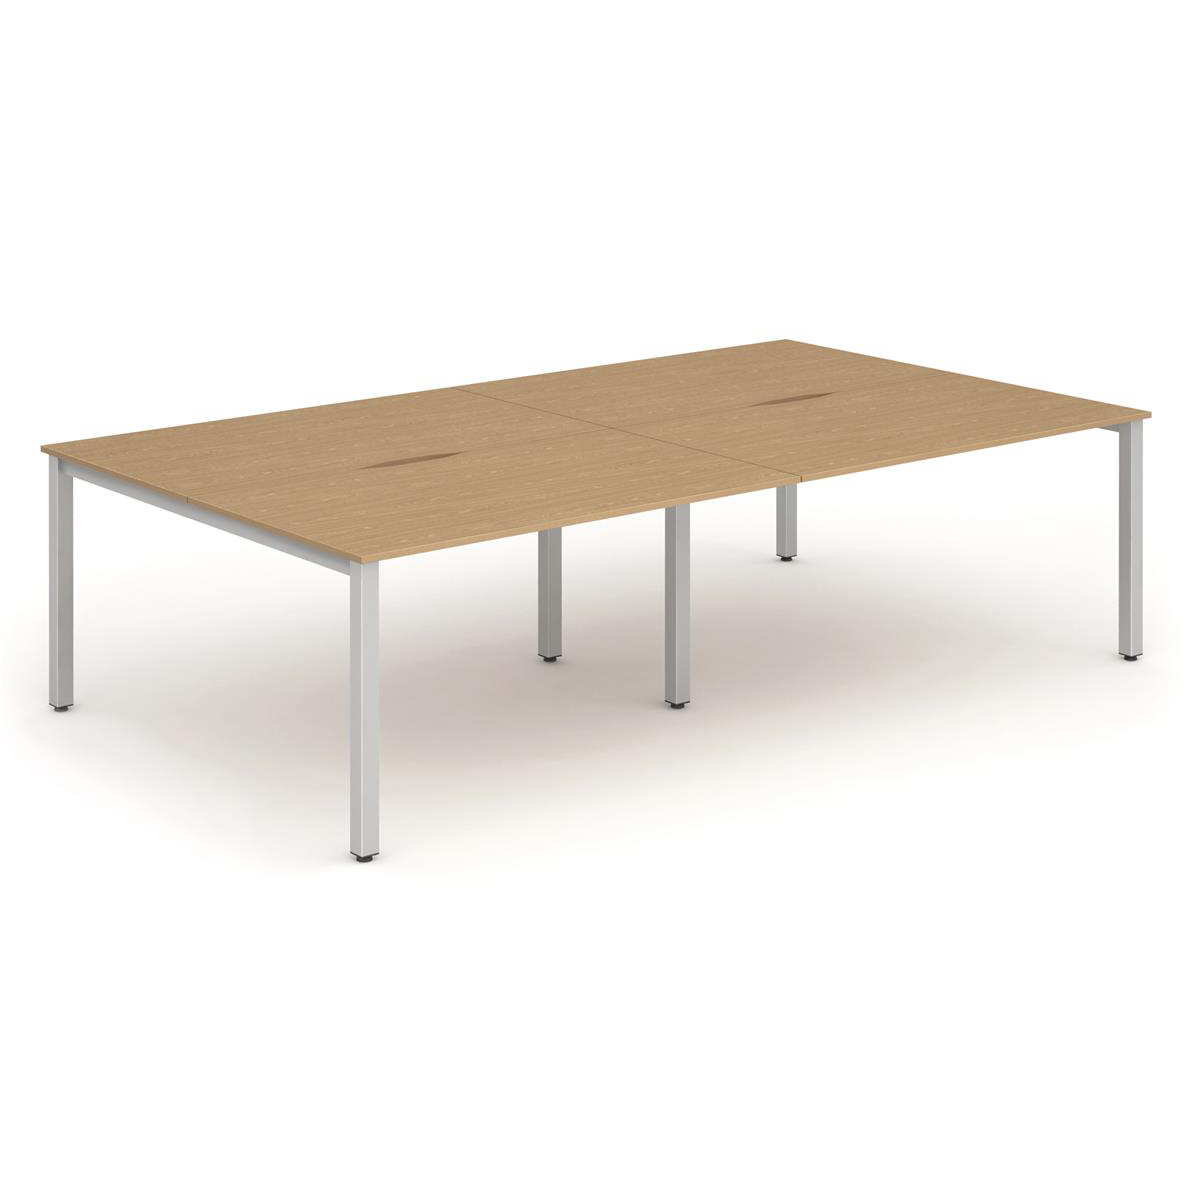 Trexus Bench Desk 4 Person Lockable Sliding Top 1400mm Oak with Silver Frame